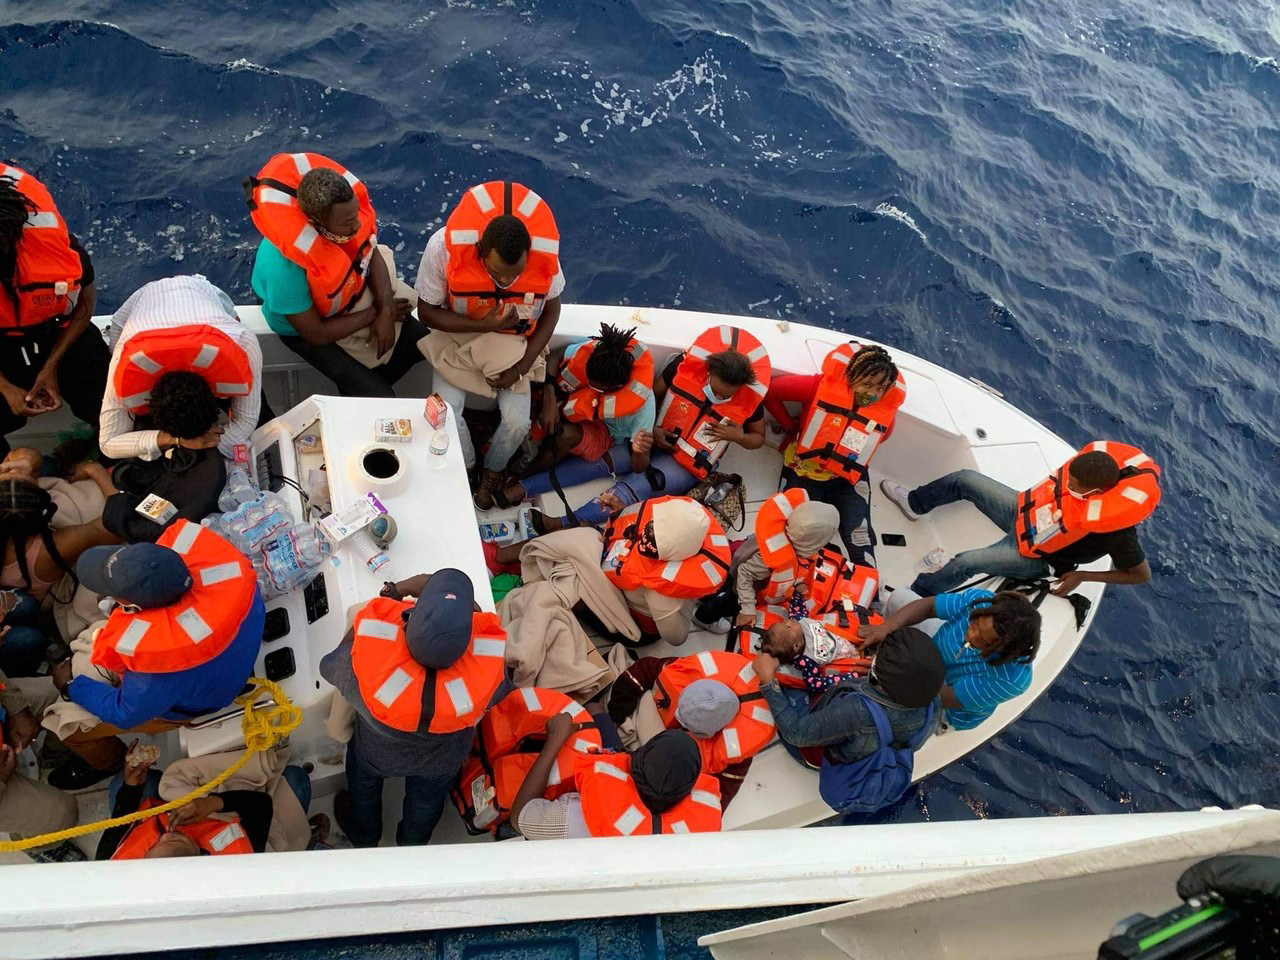 Carnival Sensation Assists Small Craft in Distress